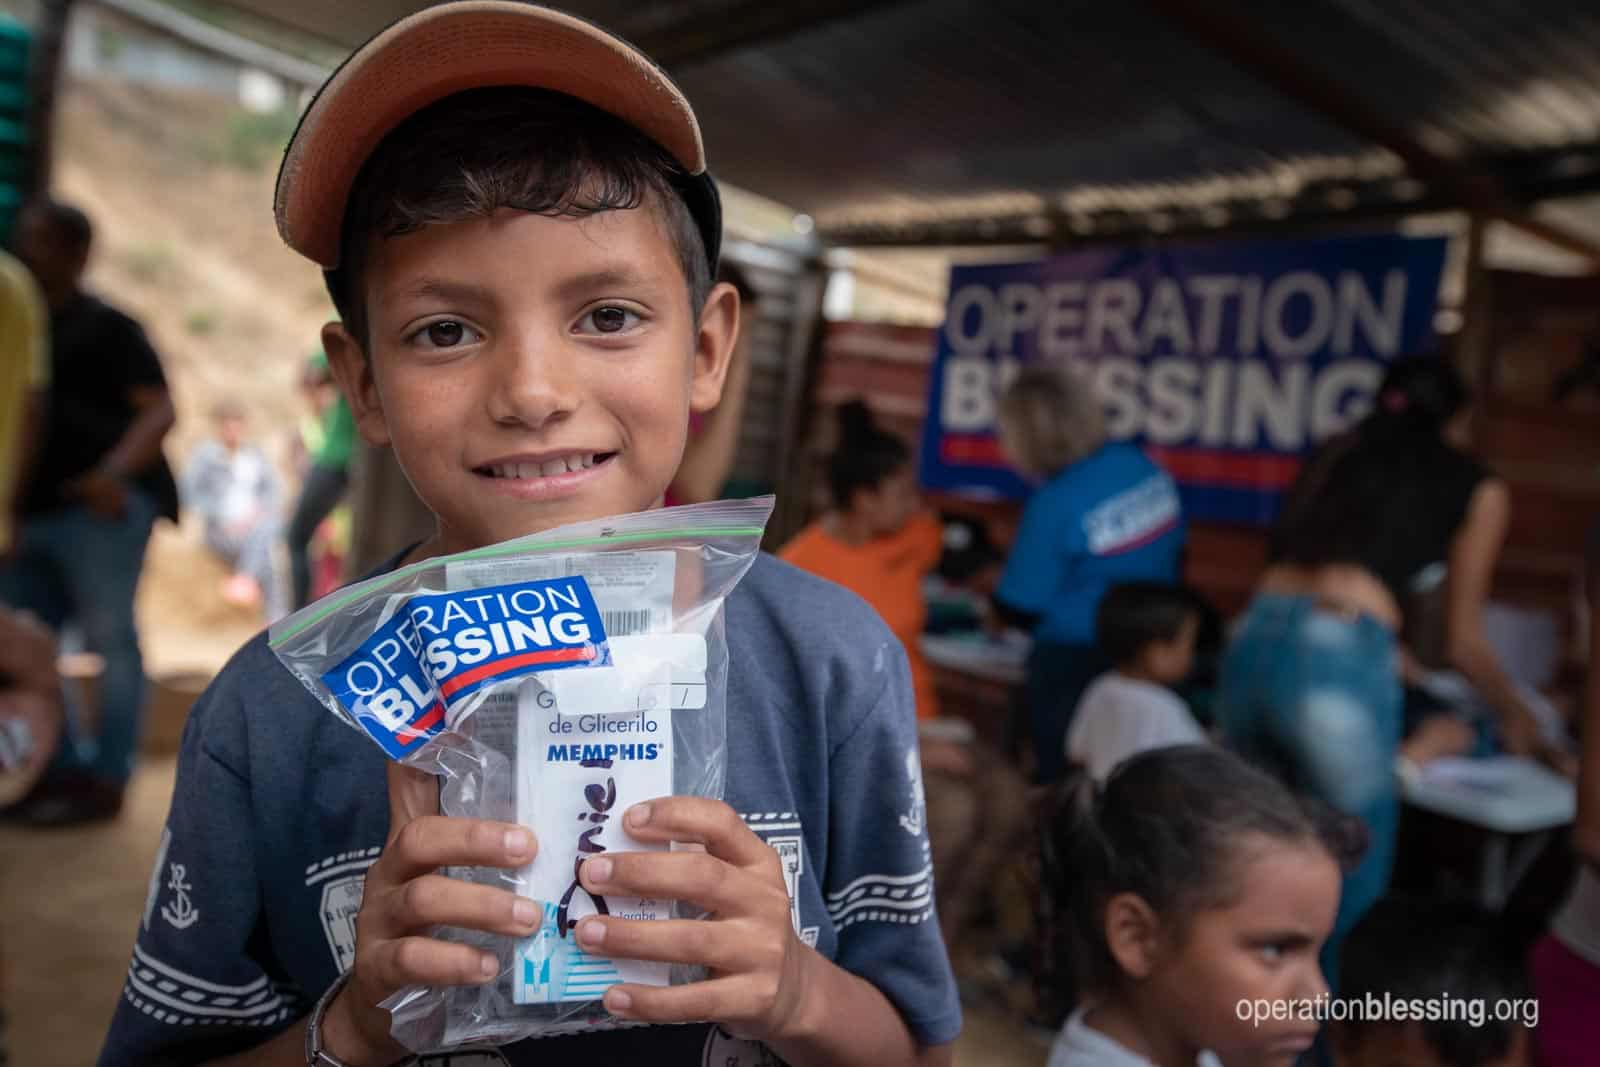 One of the young Venezuela refugees hold up a bag of free medications from Operation Blessing.